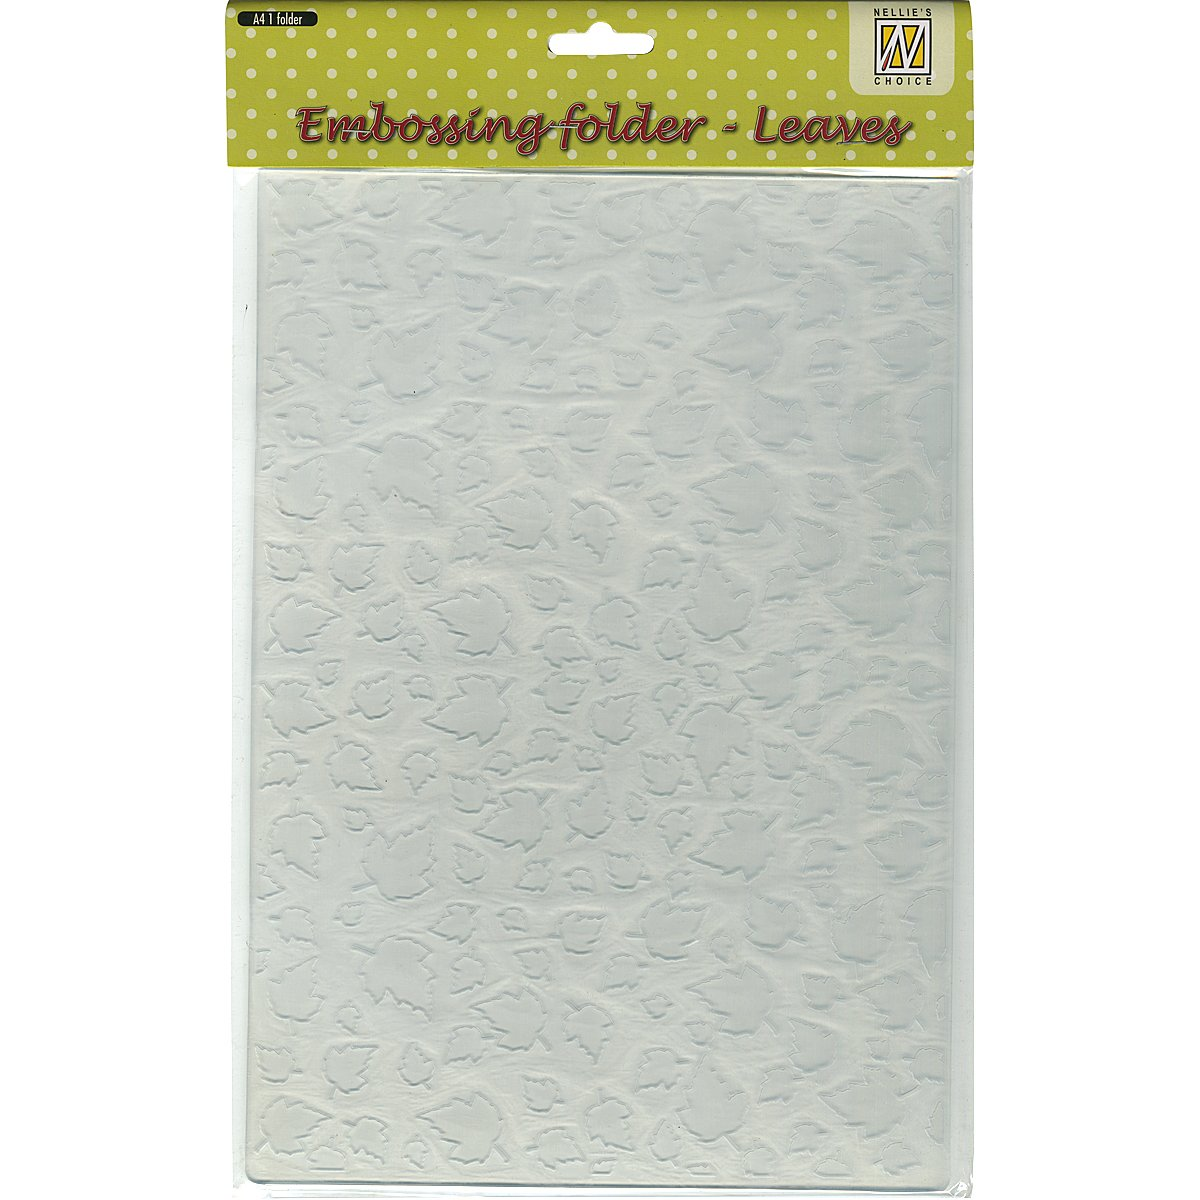 Ecstasy Crafts Nellie's Choice A4 Embossing Folder-Leaves, 8.25 by 11.875-Inch by Ecstasy Crafts